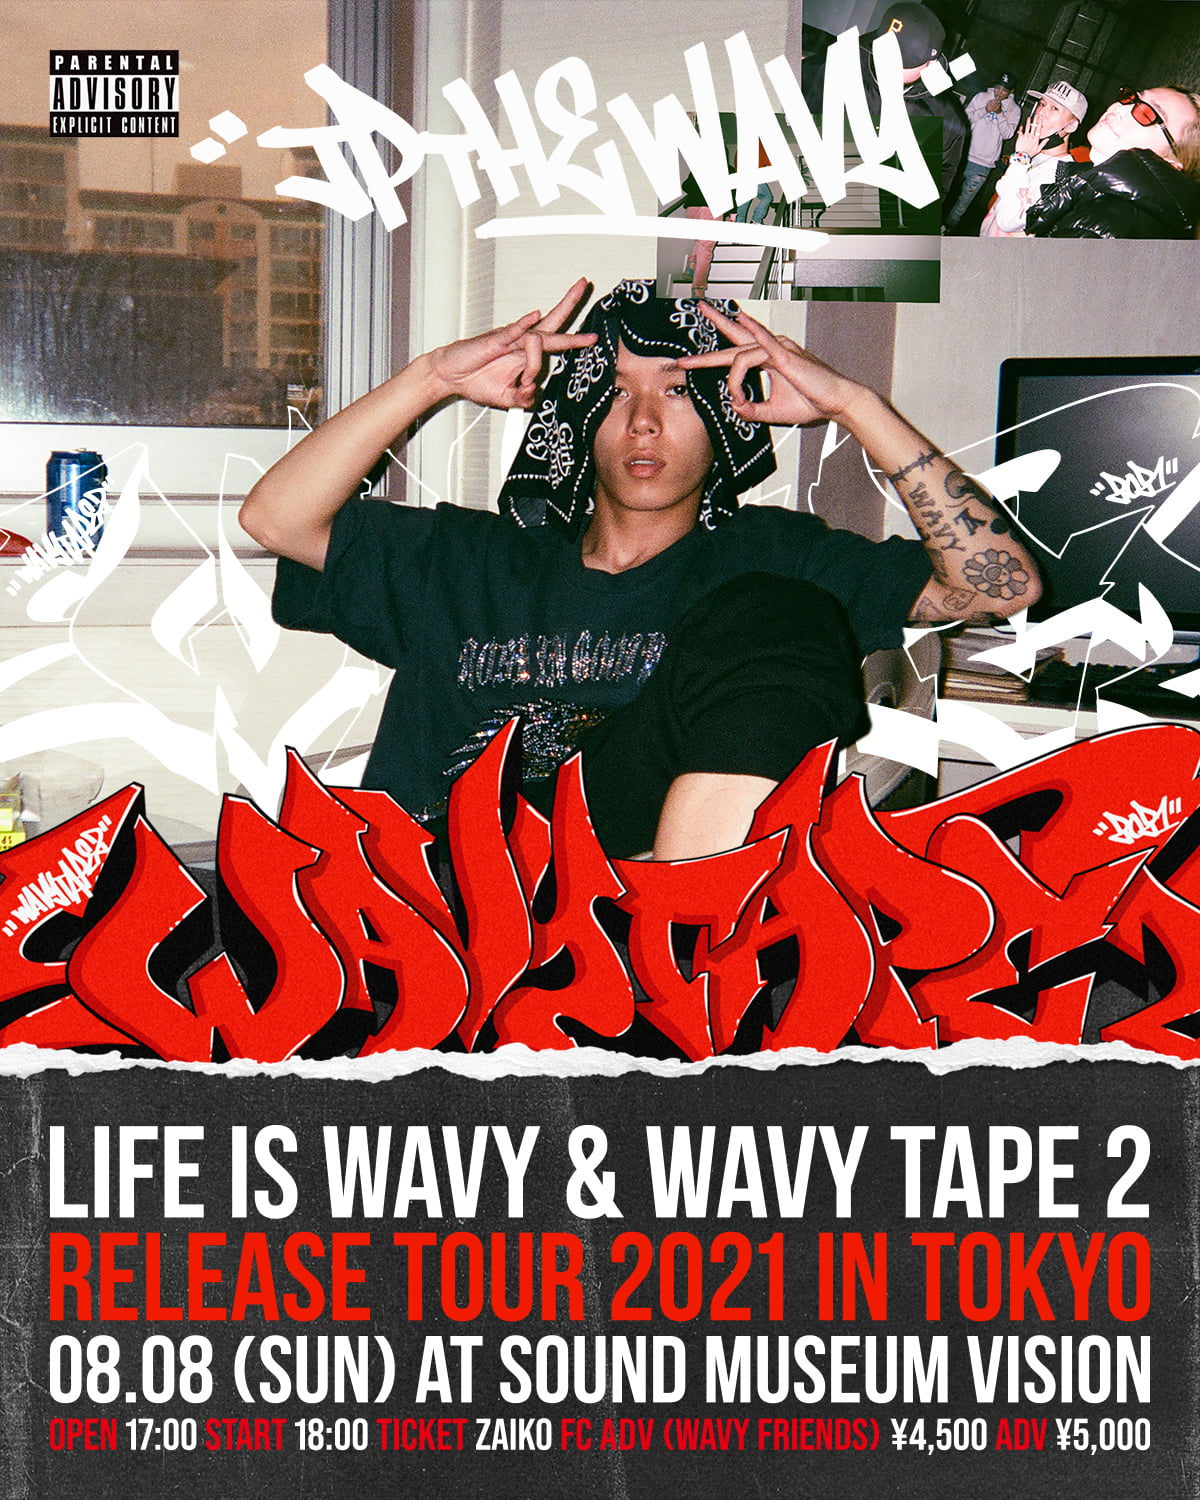 LIFE IS WAVY  WAVY TAPE 2 RELEASE TOUR 2021